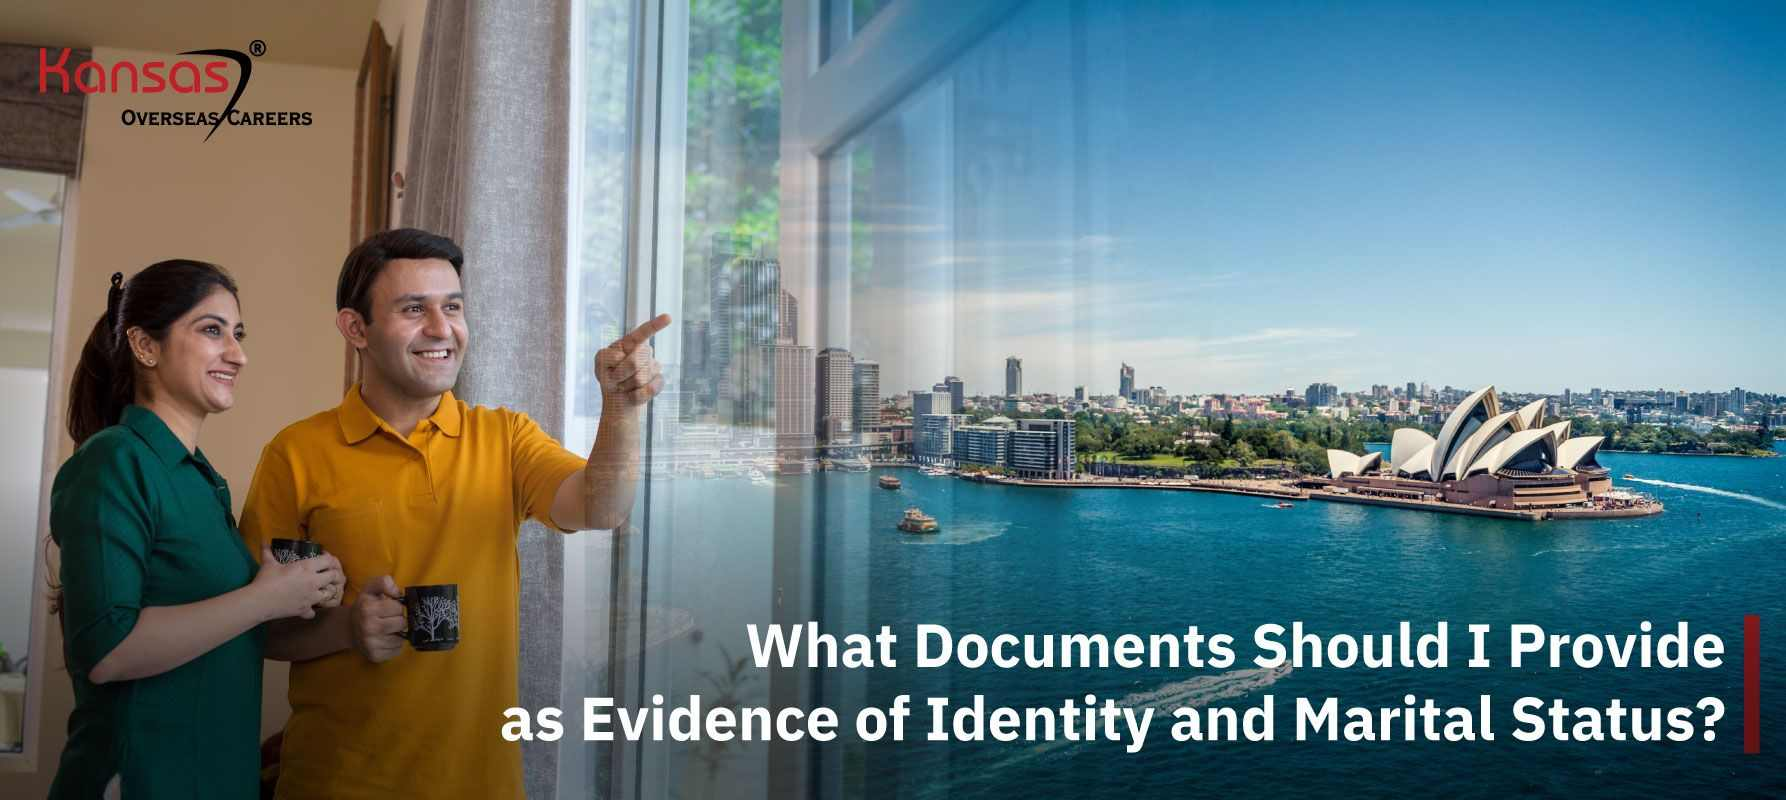 What-Documents-Should-I-Provide-as-Evidence-of-Identity-and-Marital-Status